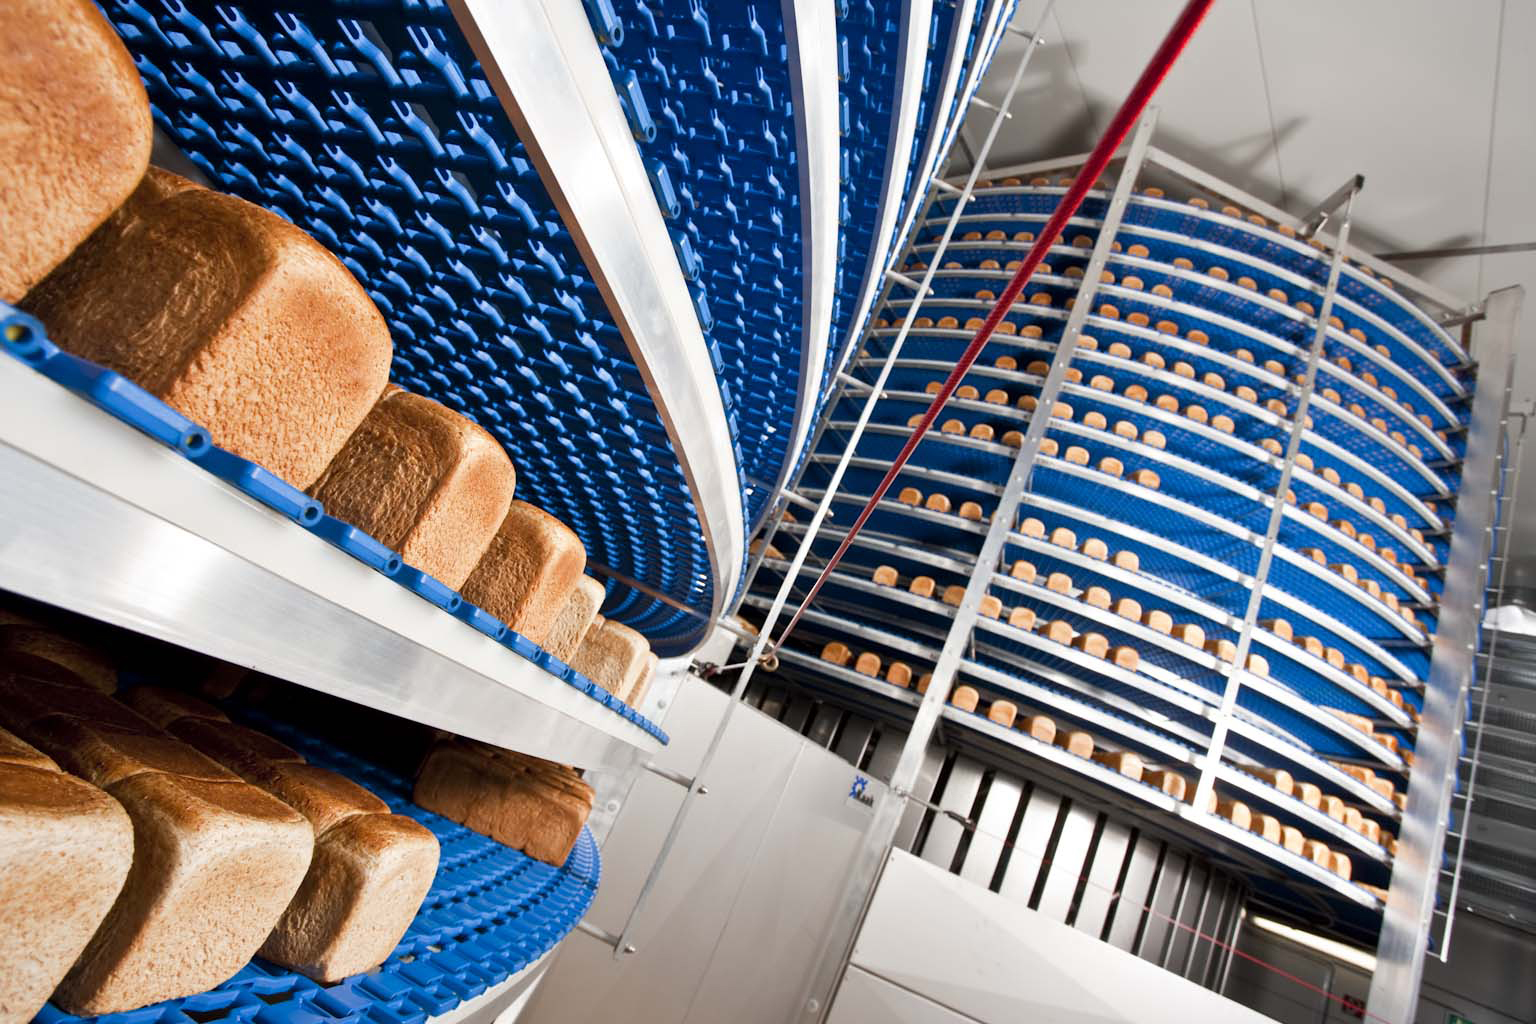 Spiral-Processing-Bread-Production